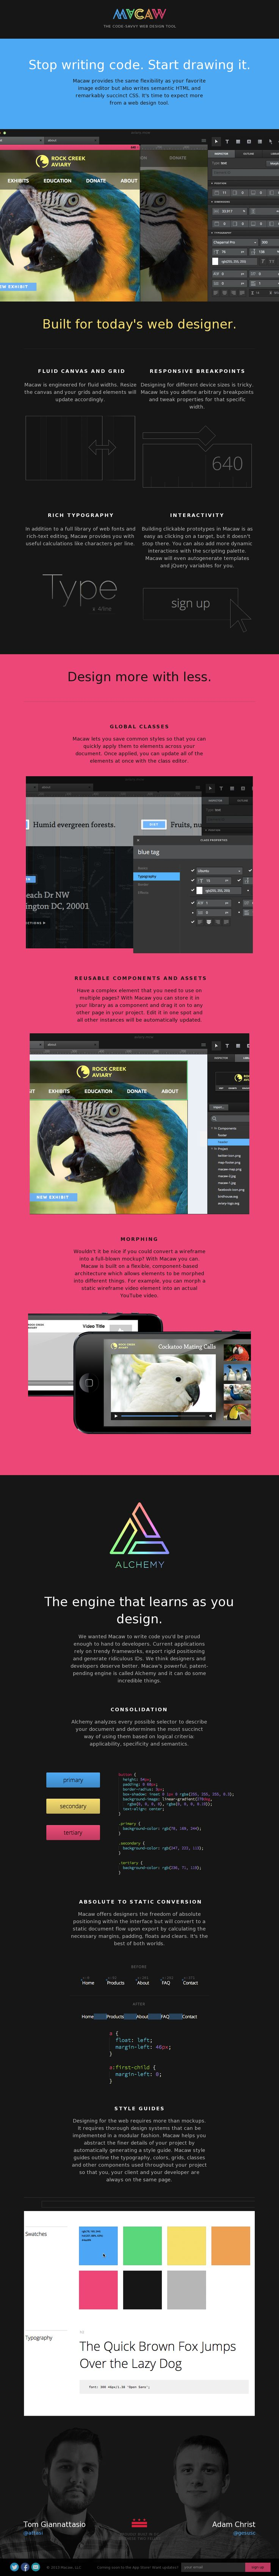 Nice web app with a colorful, flat web design.